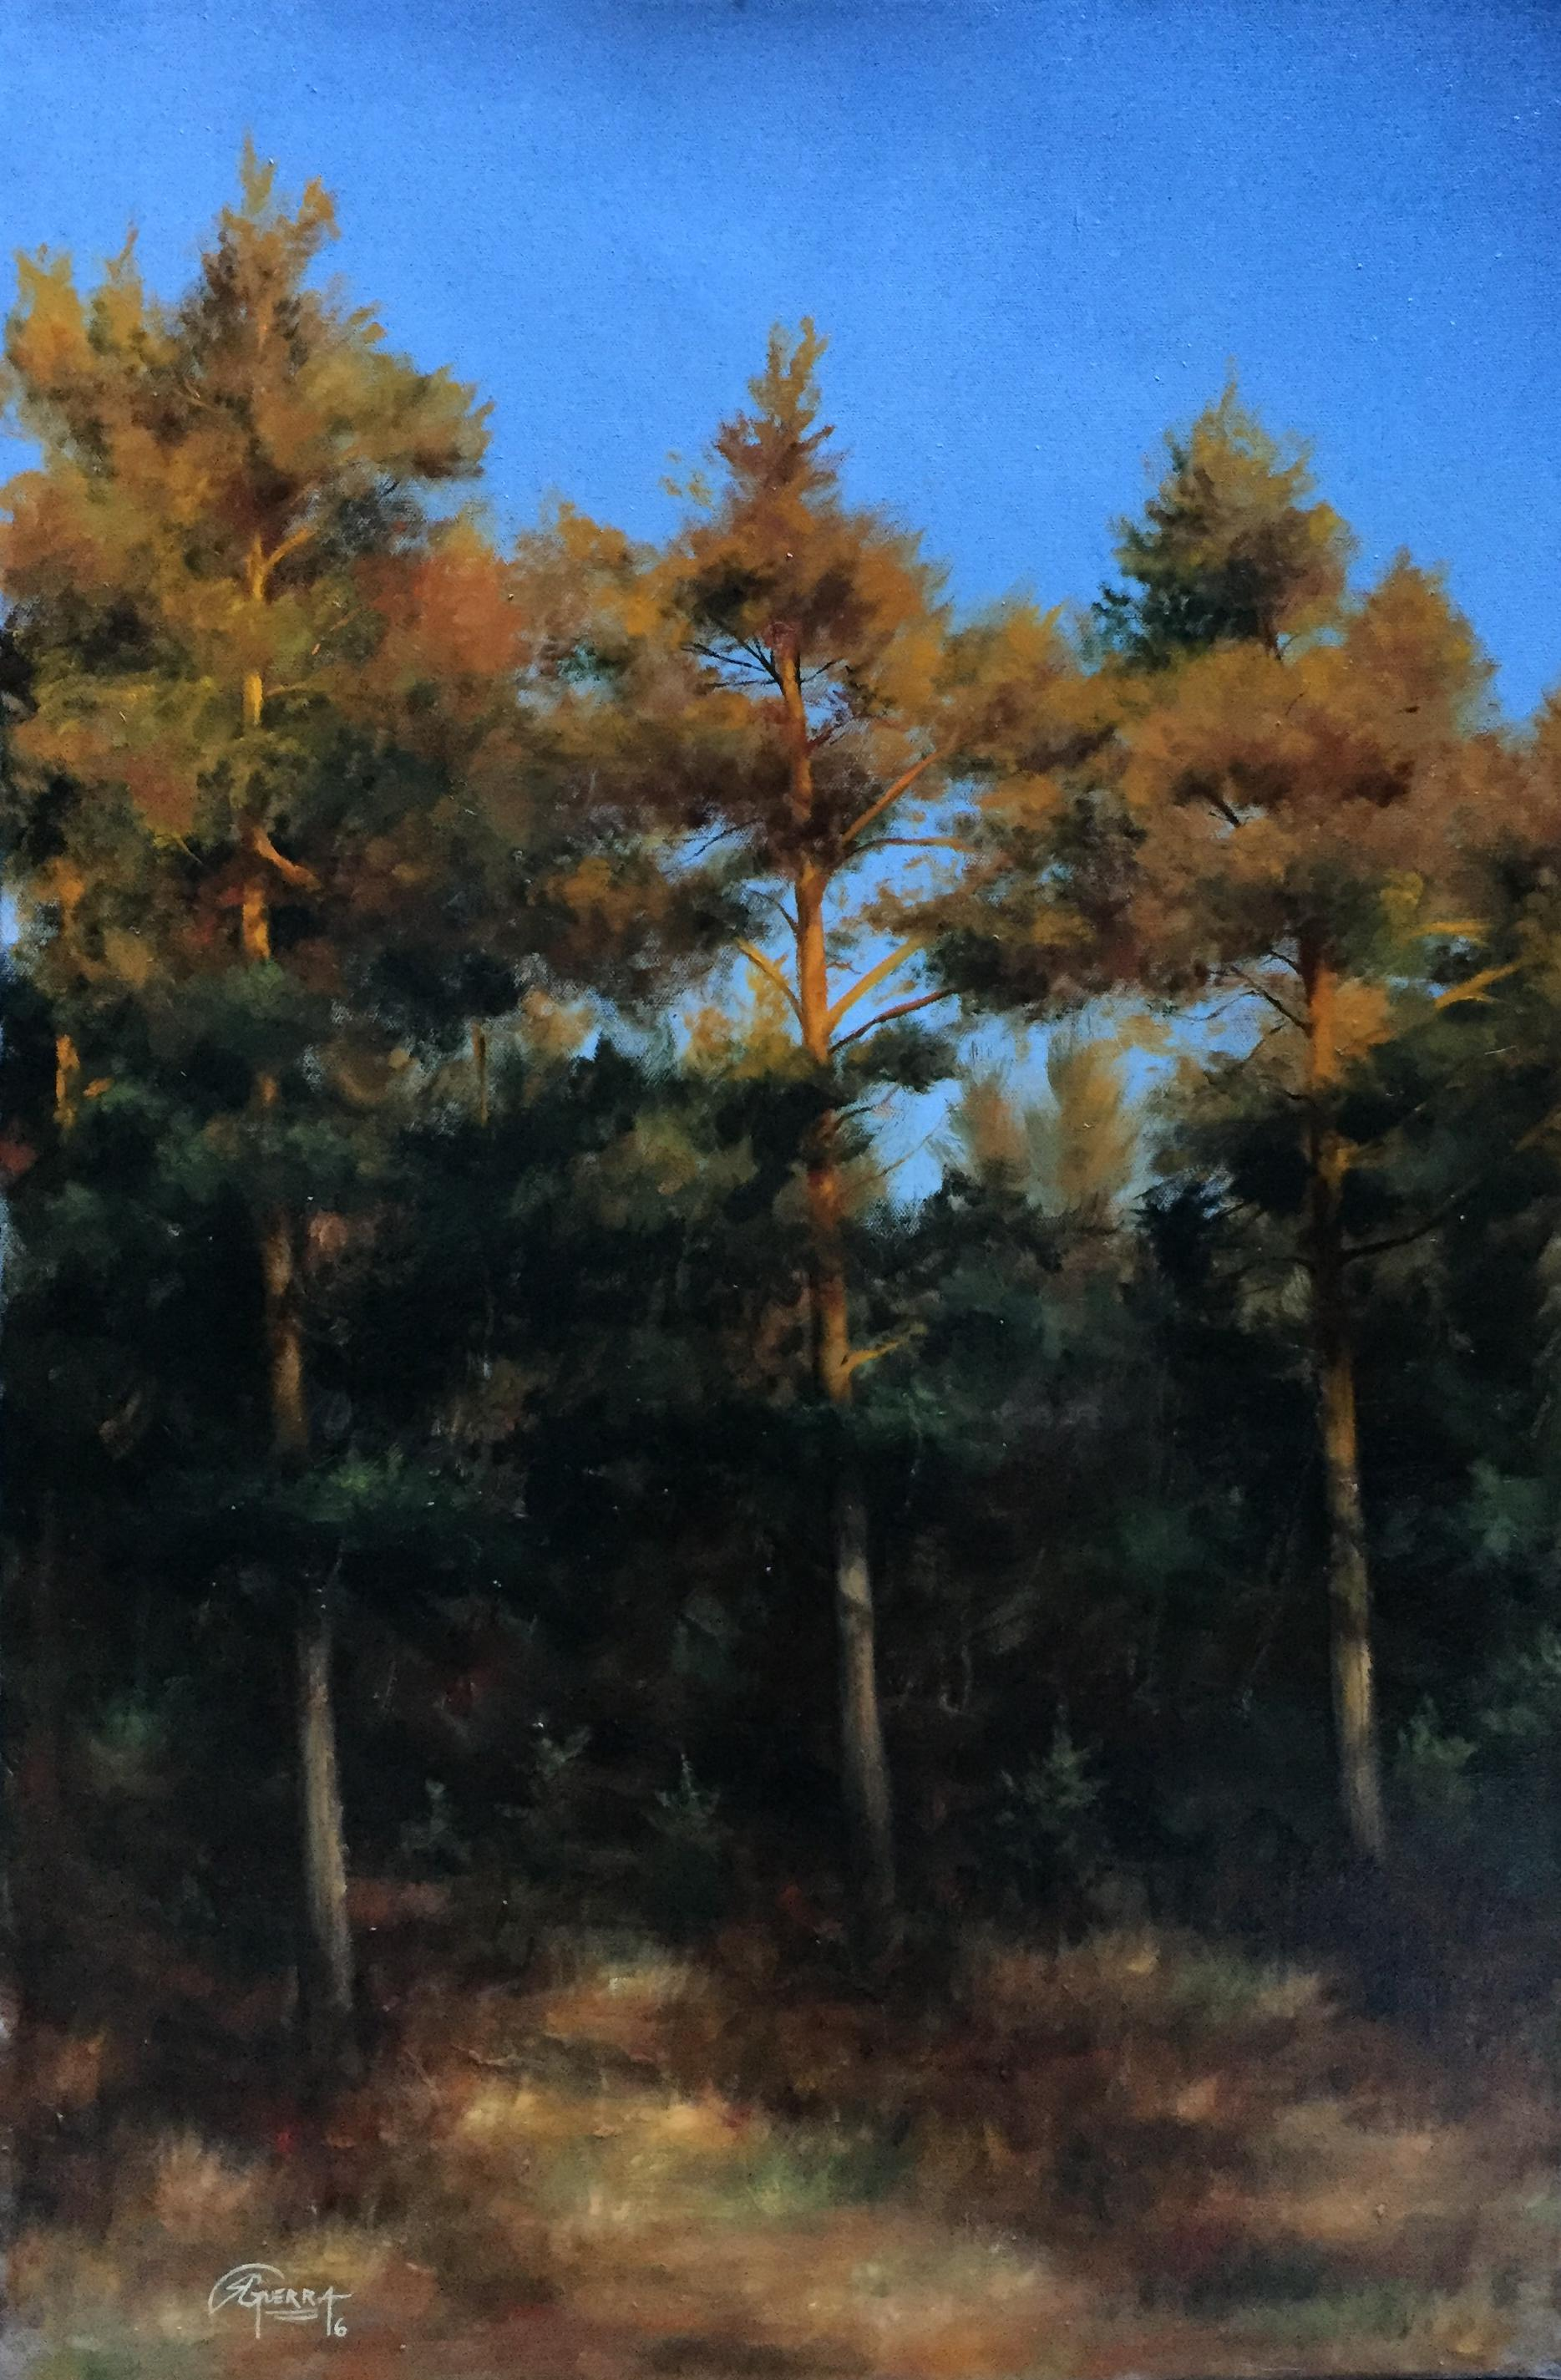 Finnish Pine Trees in Autumn, Rafael Guerra Painting